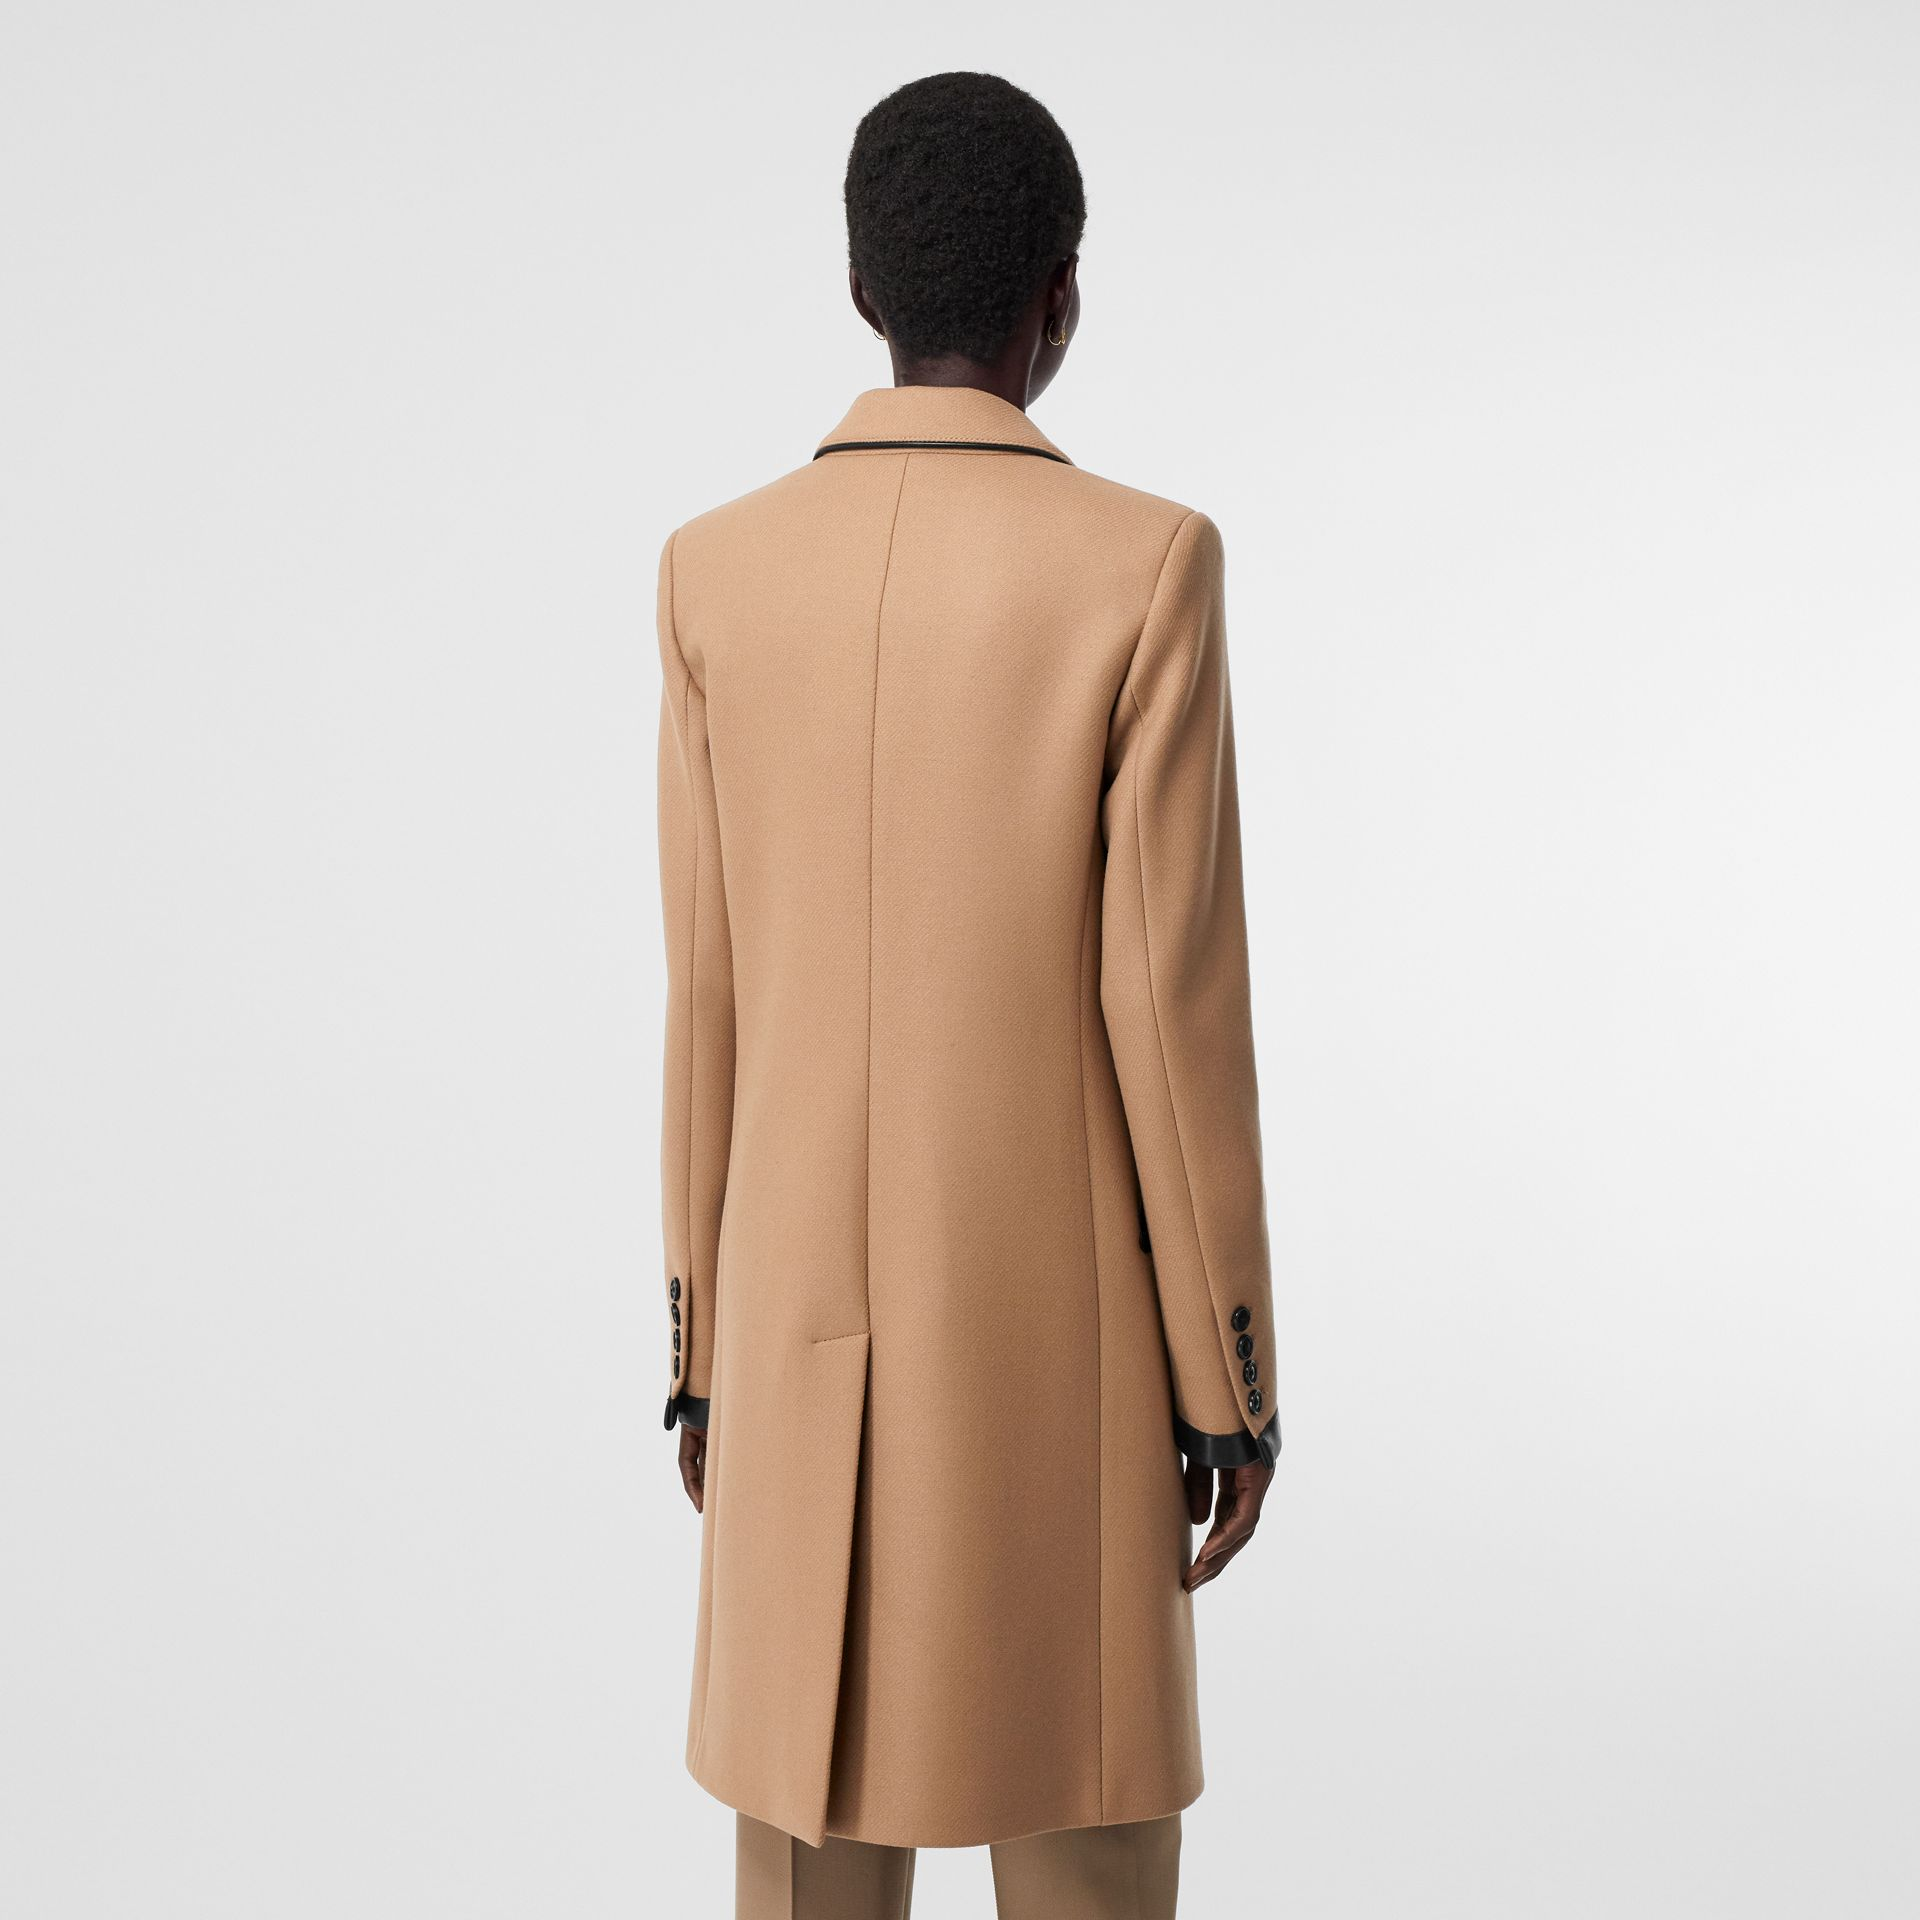 Lambskin Trim Wool Cashmere Blend Tailored Coat in Camel - Women | Burberry United Kingdom - gallery image 2